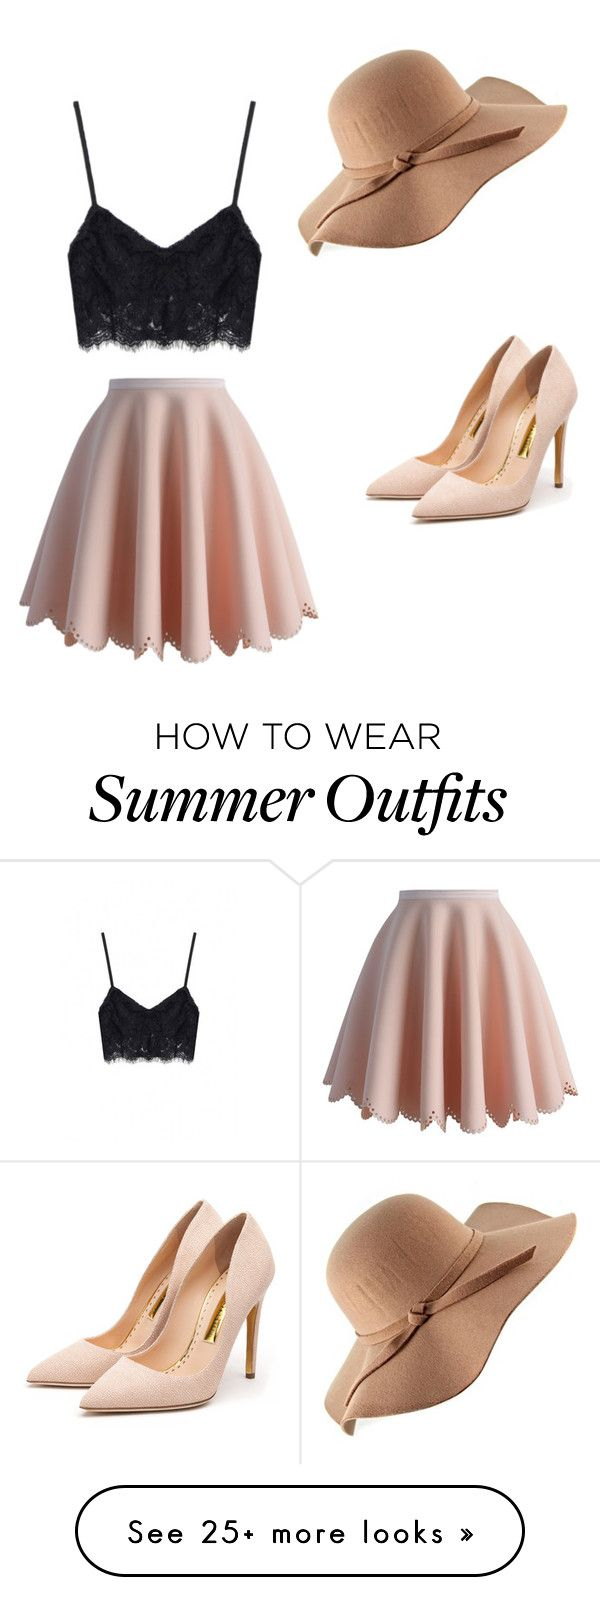 """summer outfit"" by blkchezka on Polyvore featuring Chicwish and Rupert Sanderson"